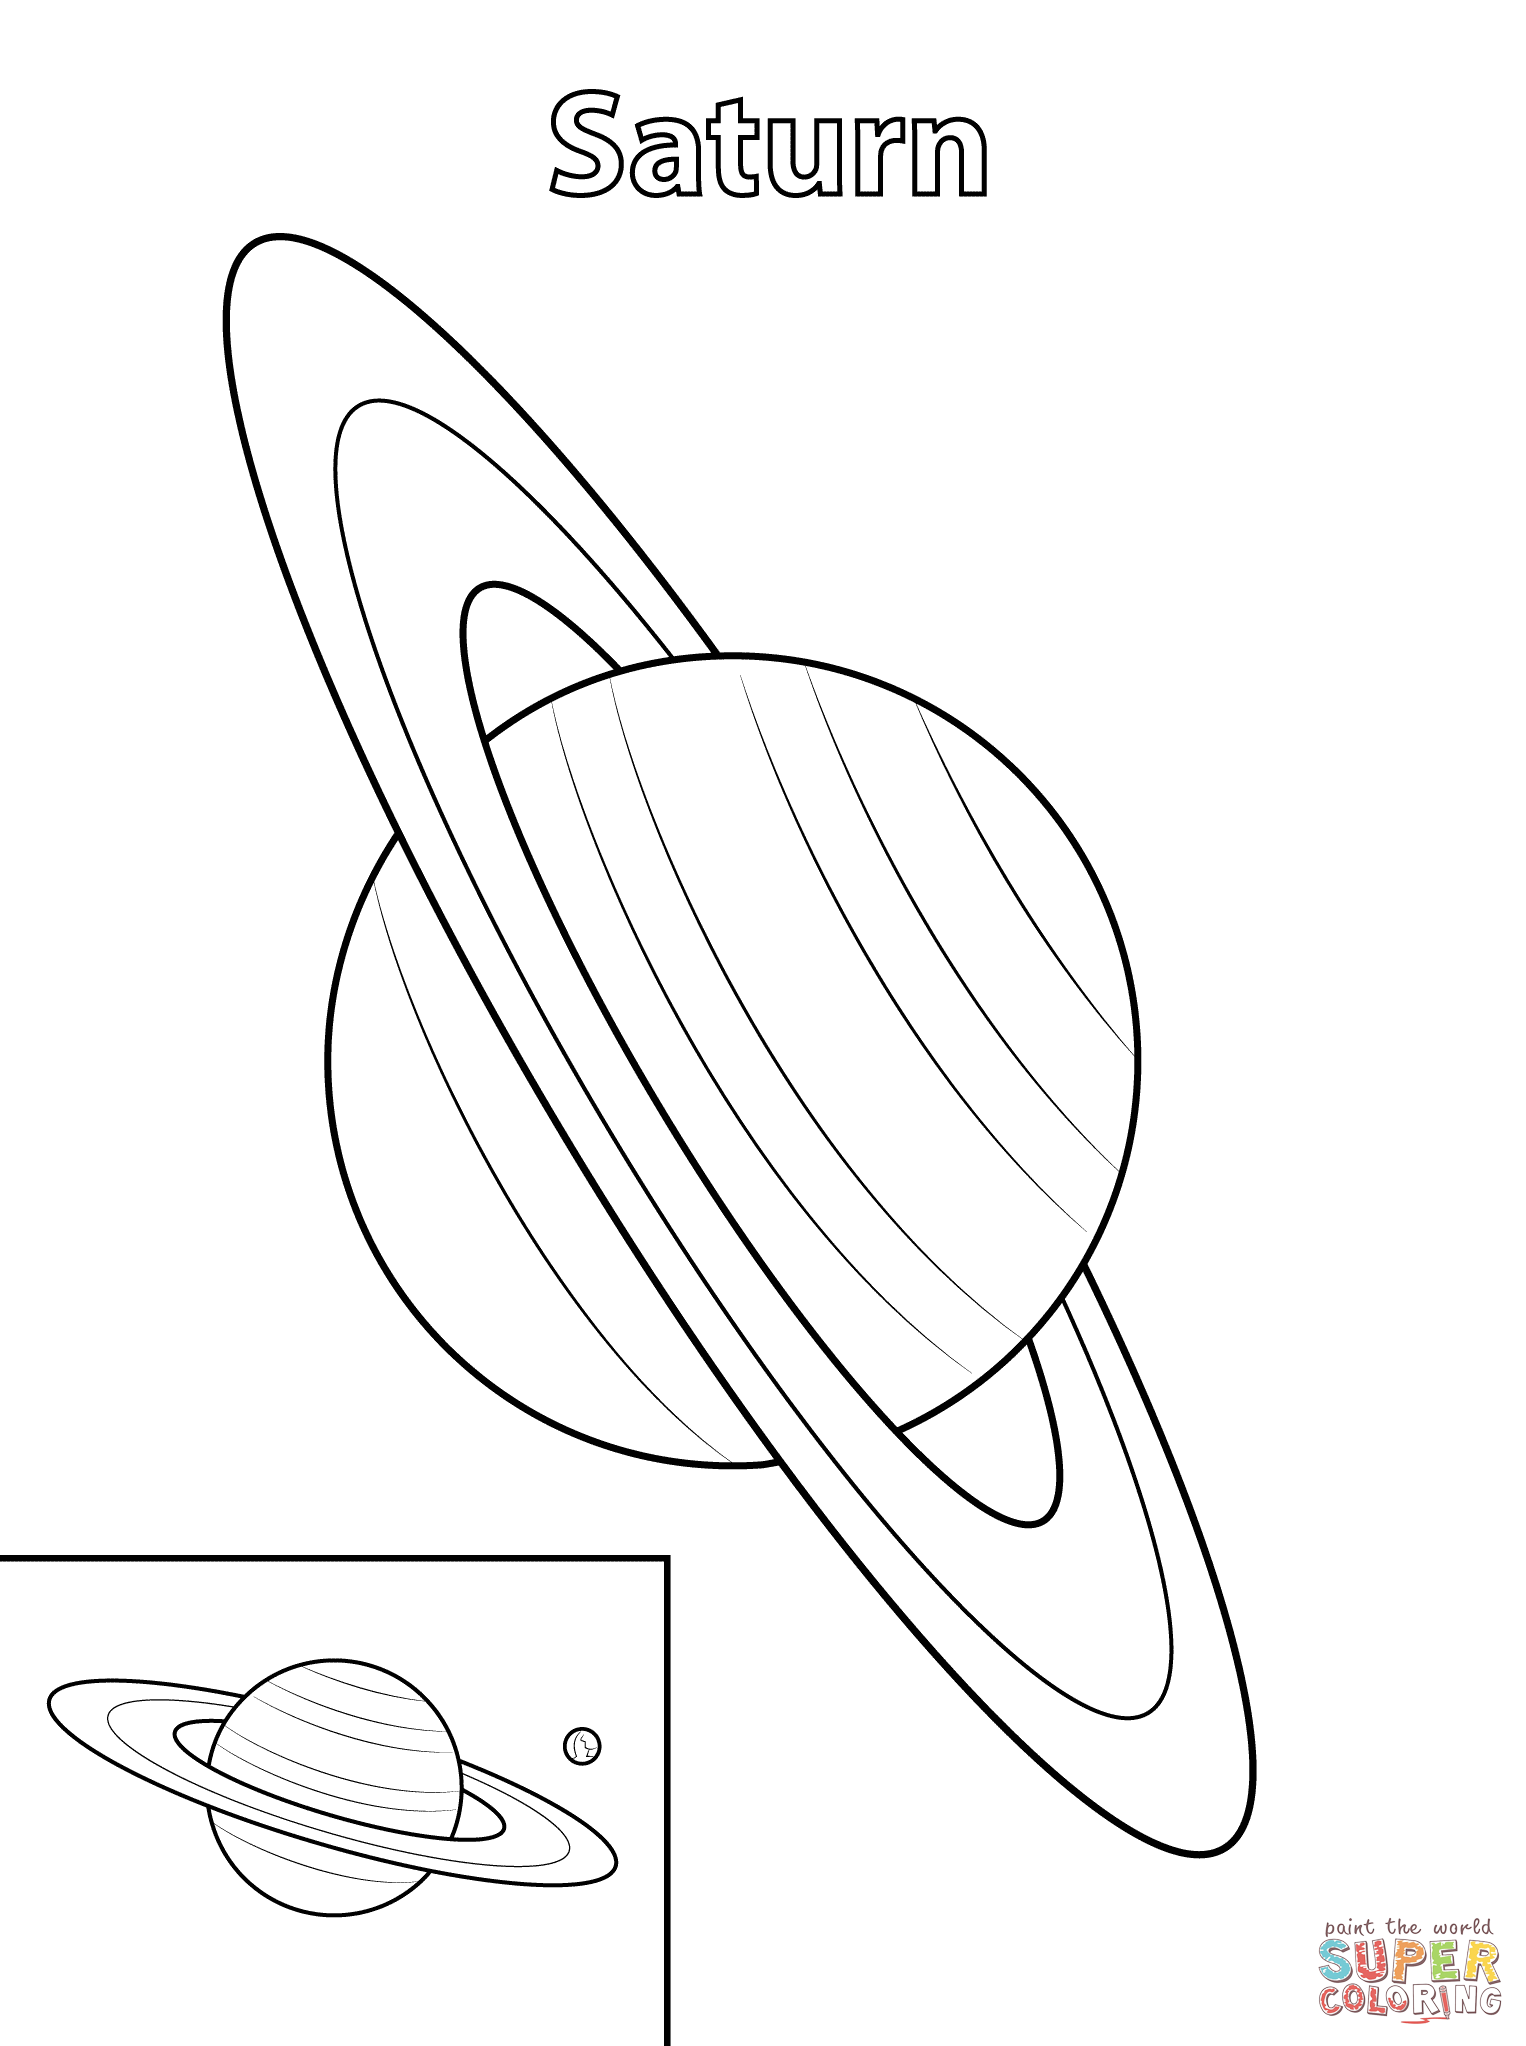 Saturn Coloring Pages Print